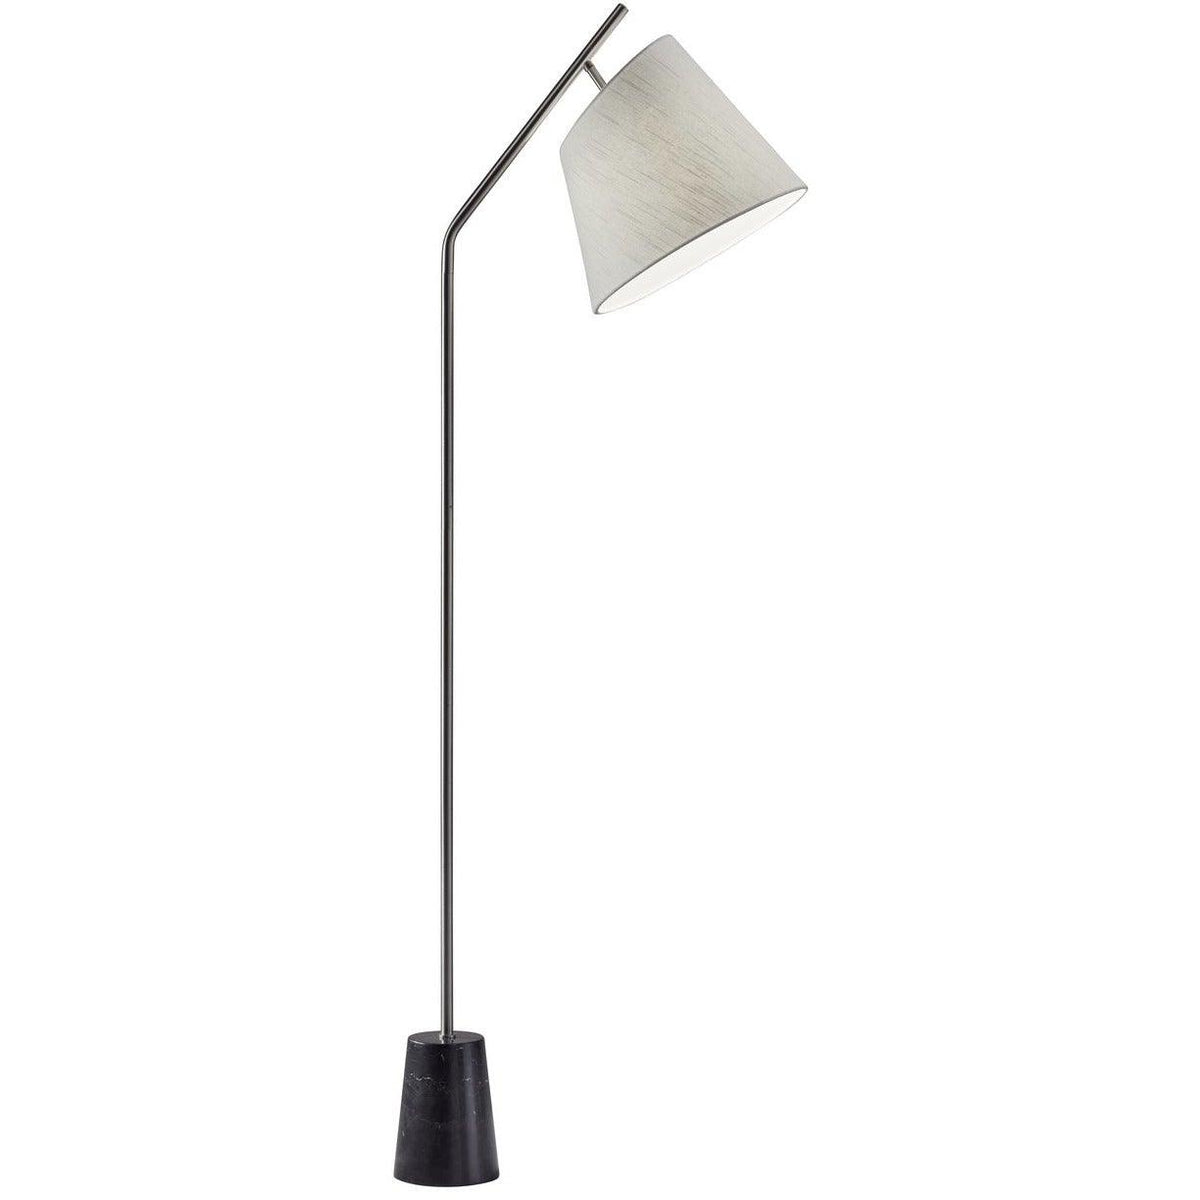 Adesso Home - 4194-22 - One Light Floor Lamp - Dempsey - Brushed Steel